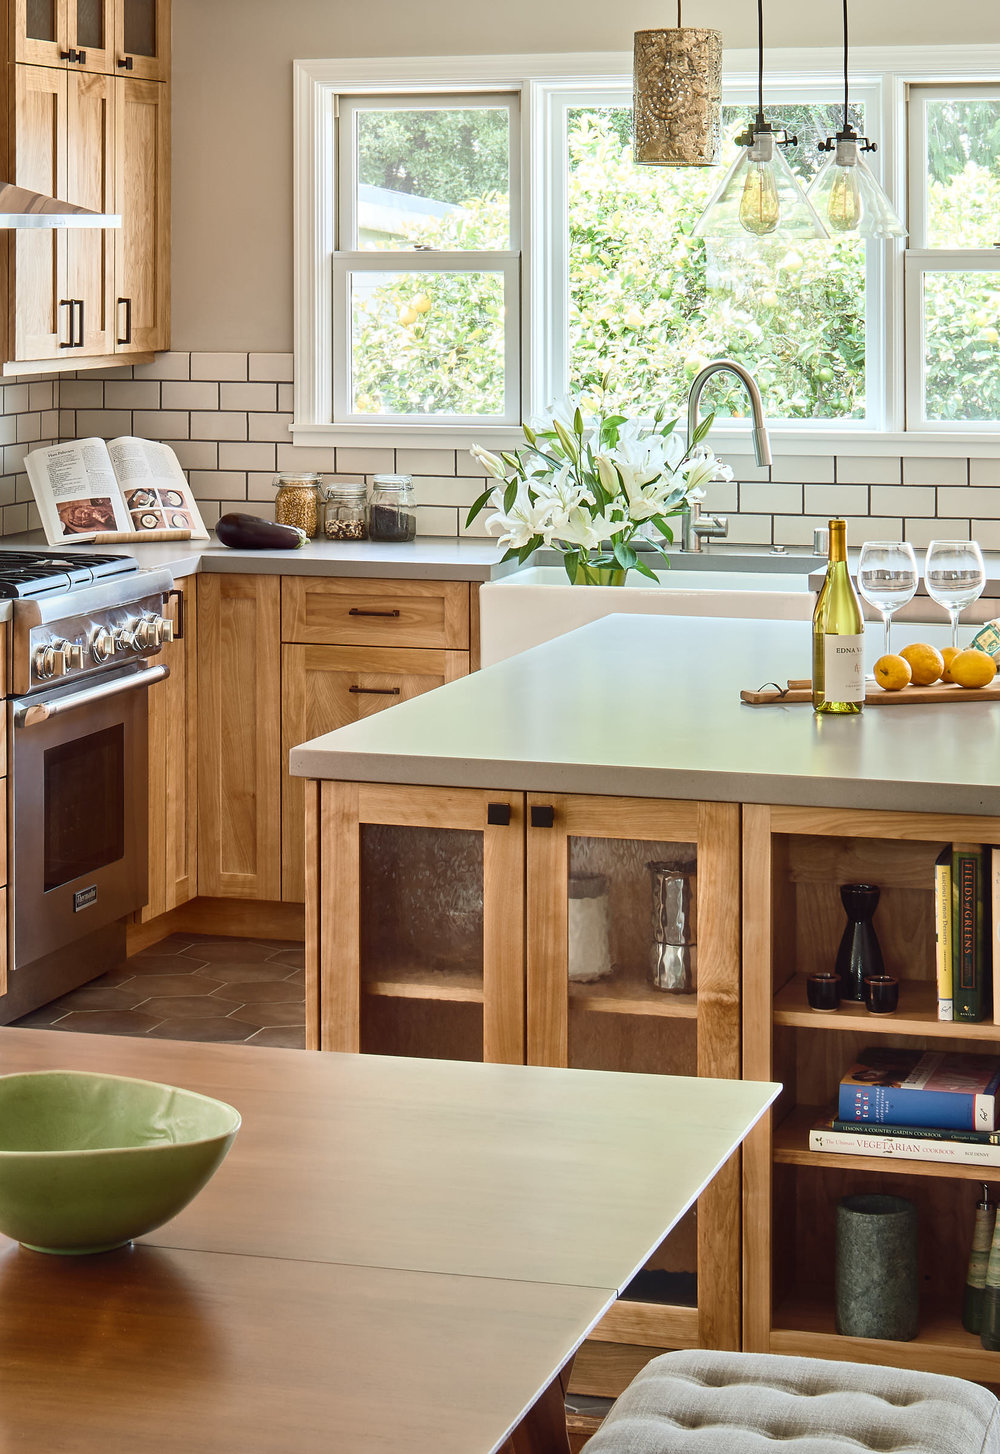 El Cerrito Kitchen for Carrie LaMastus by Dean J. Birinyi